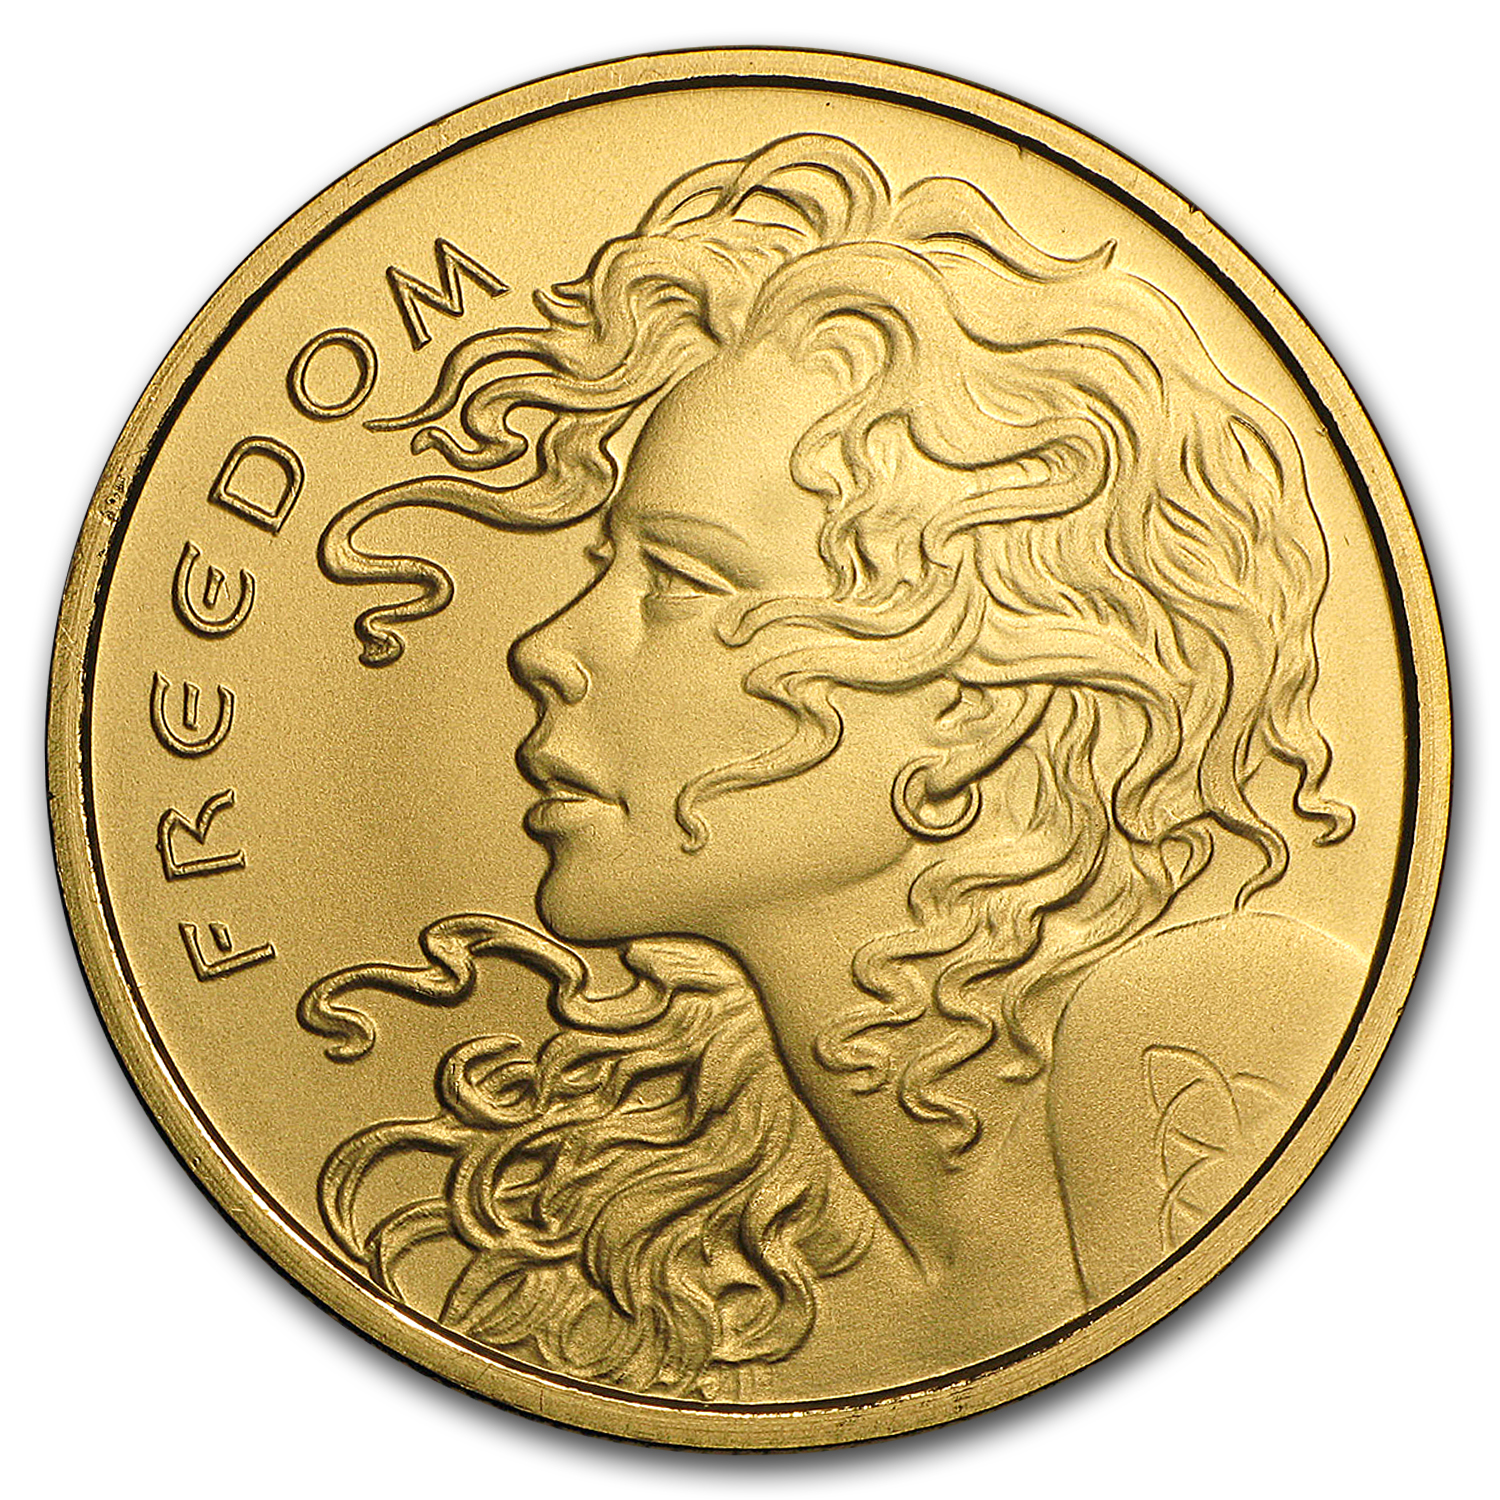 2017 1 oz Gold Round - Freedom Girl (w/Box & COA)